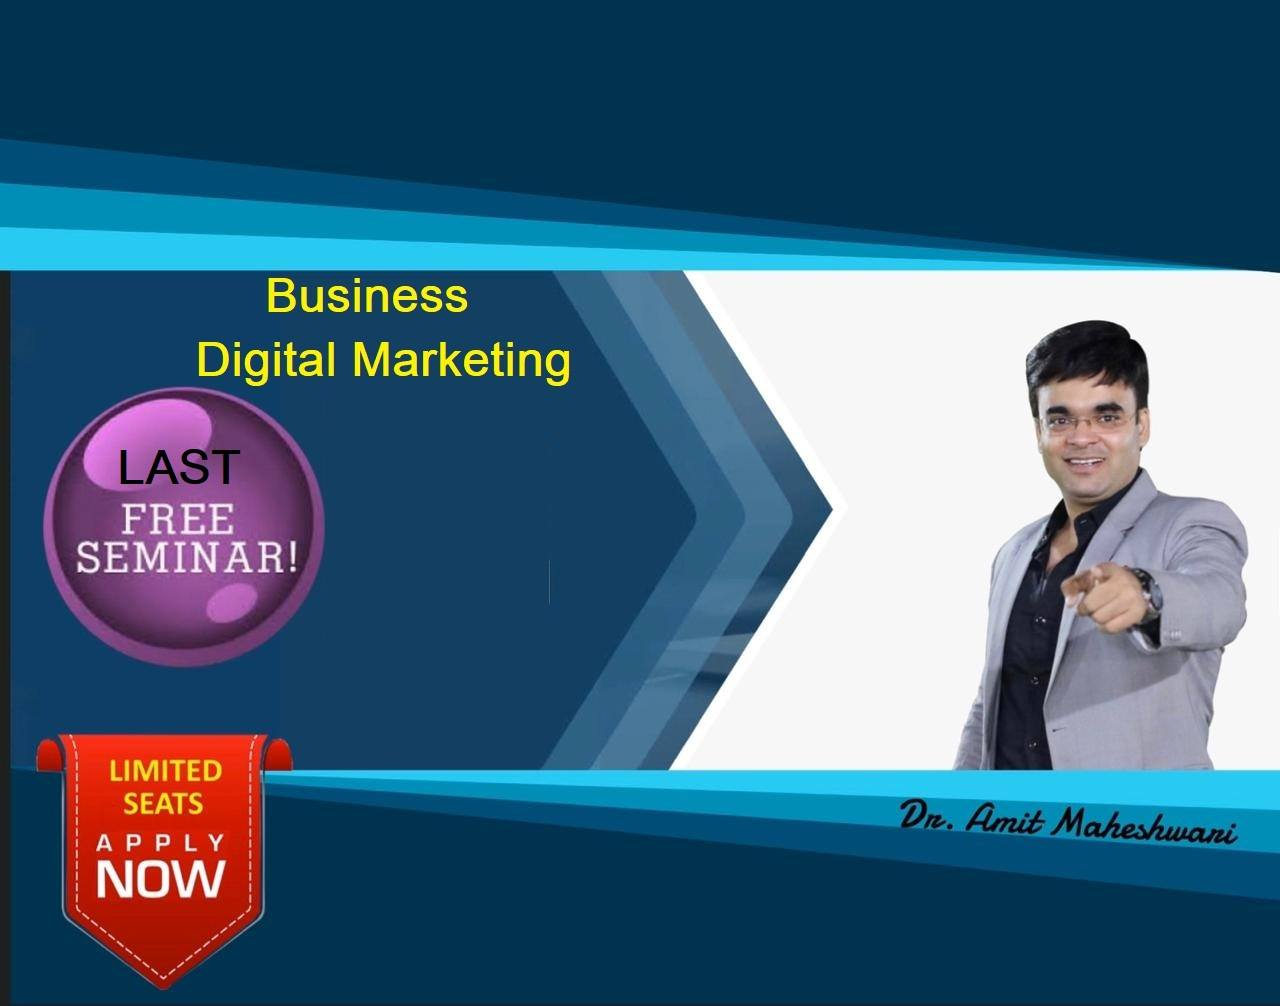 Last Free Business Digital Marketing Seminar on 29th Dec 11 AM